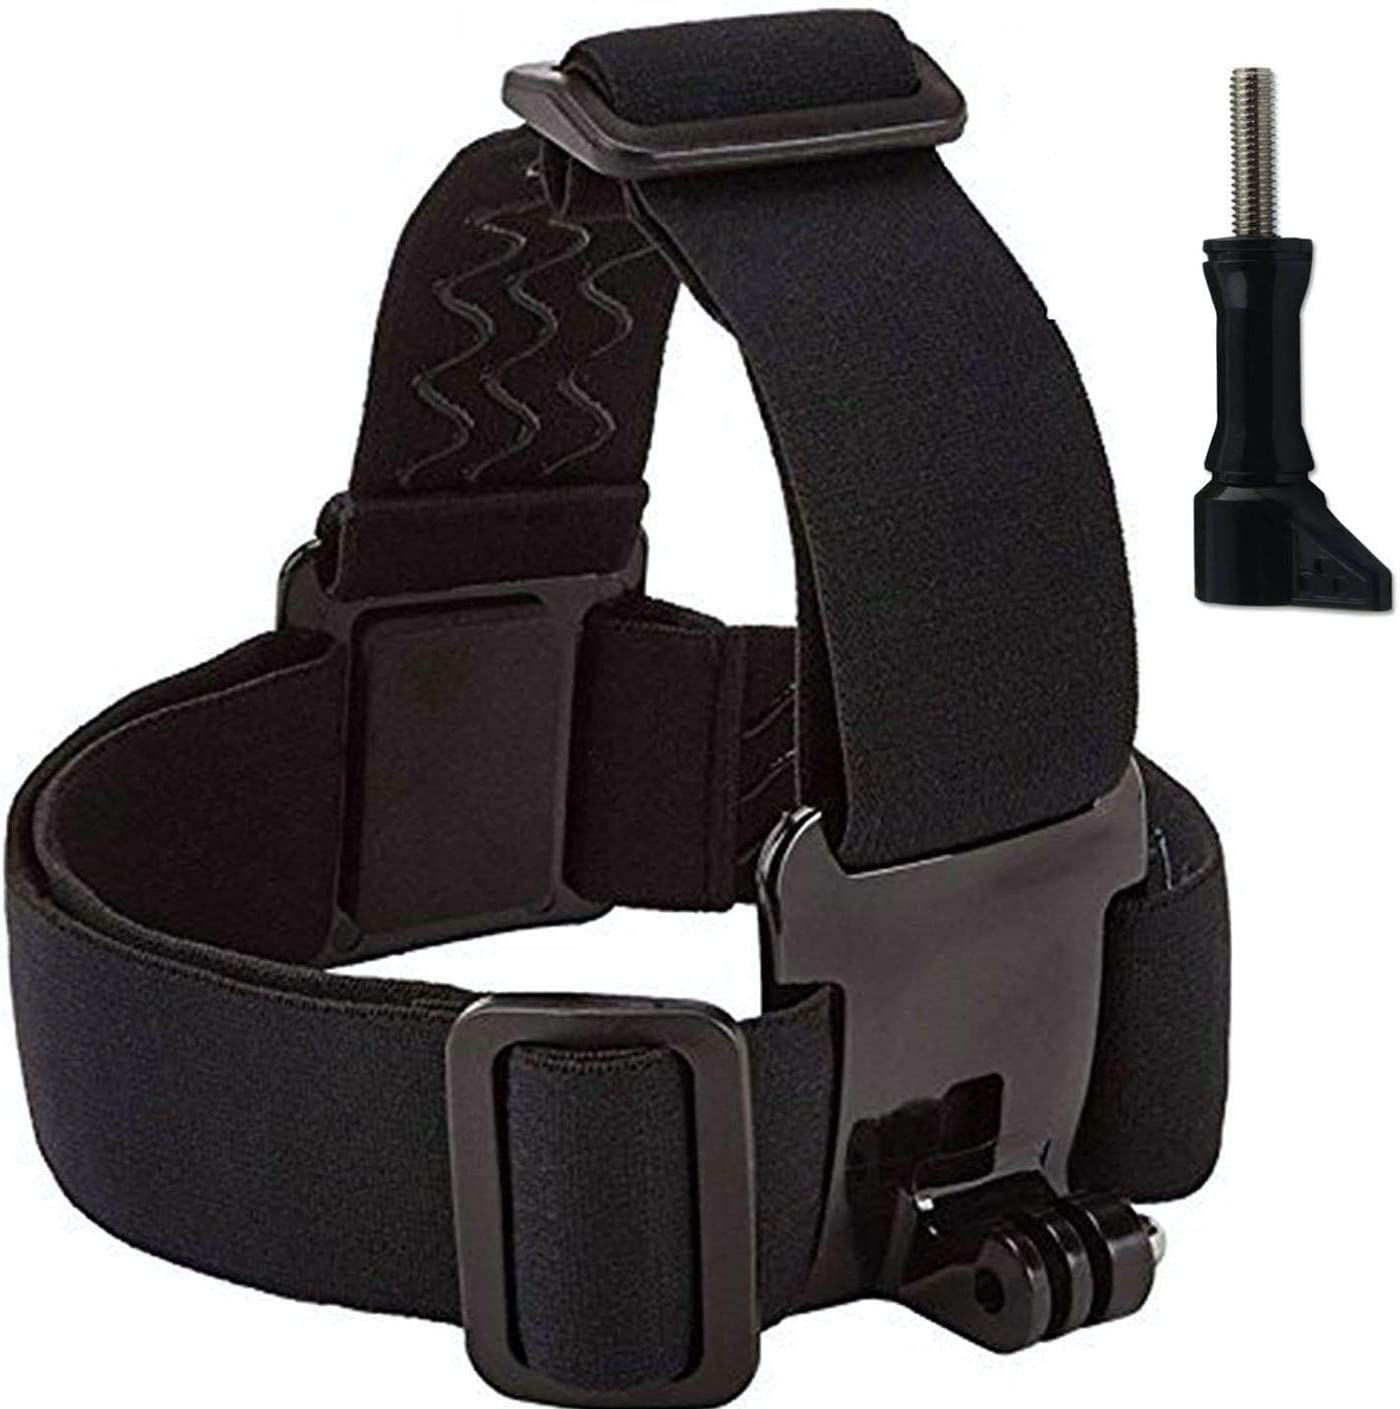 London FAB Elastic Head Harnes G Mount Strap Compatible Free shipping Max 58% OFF on posting reviews with